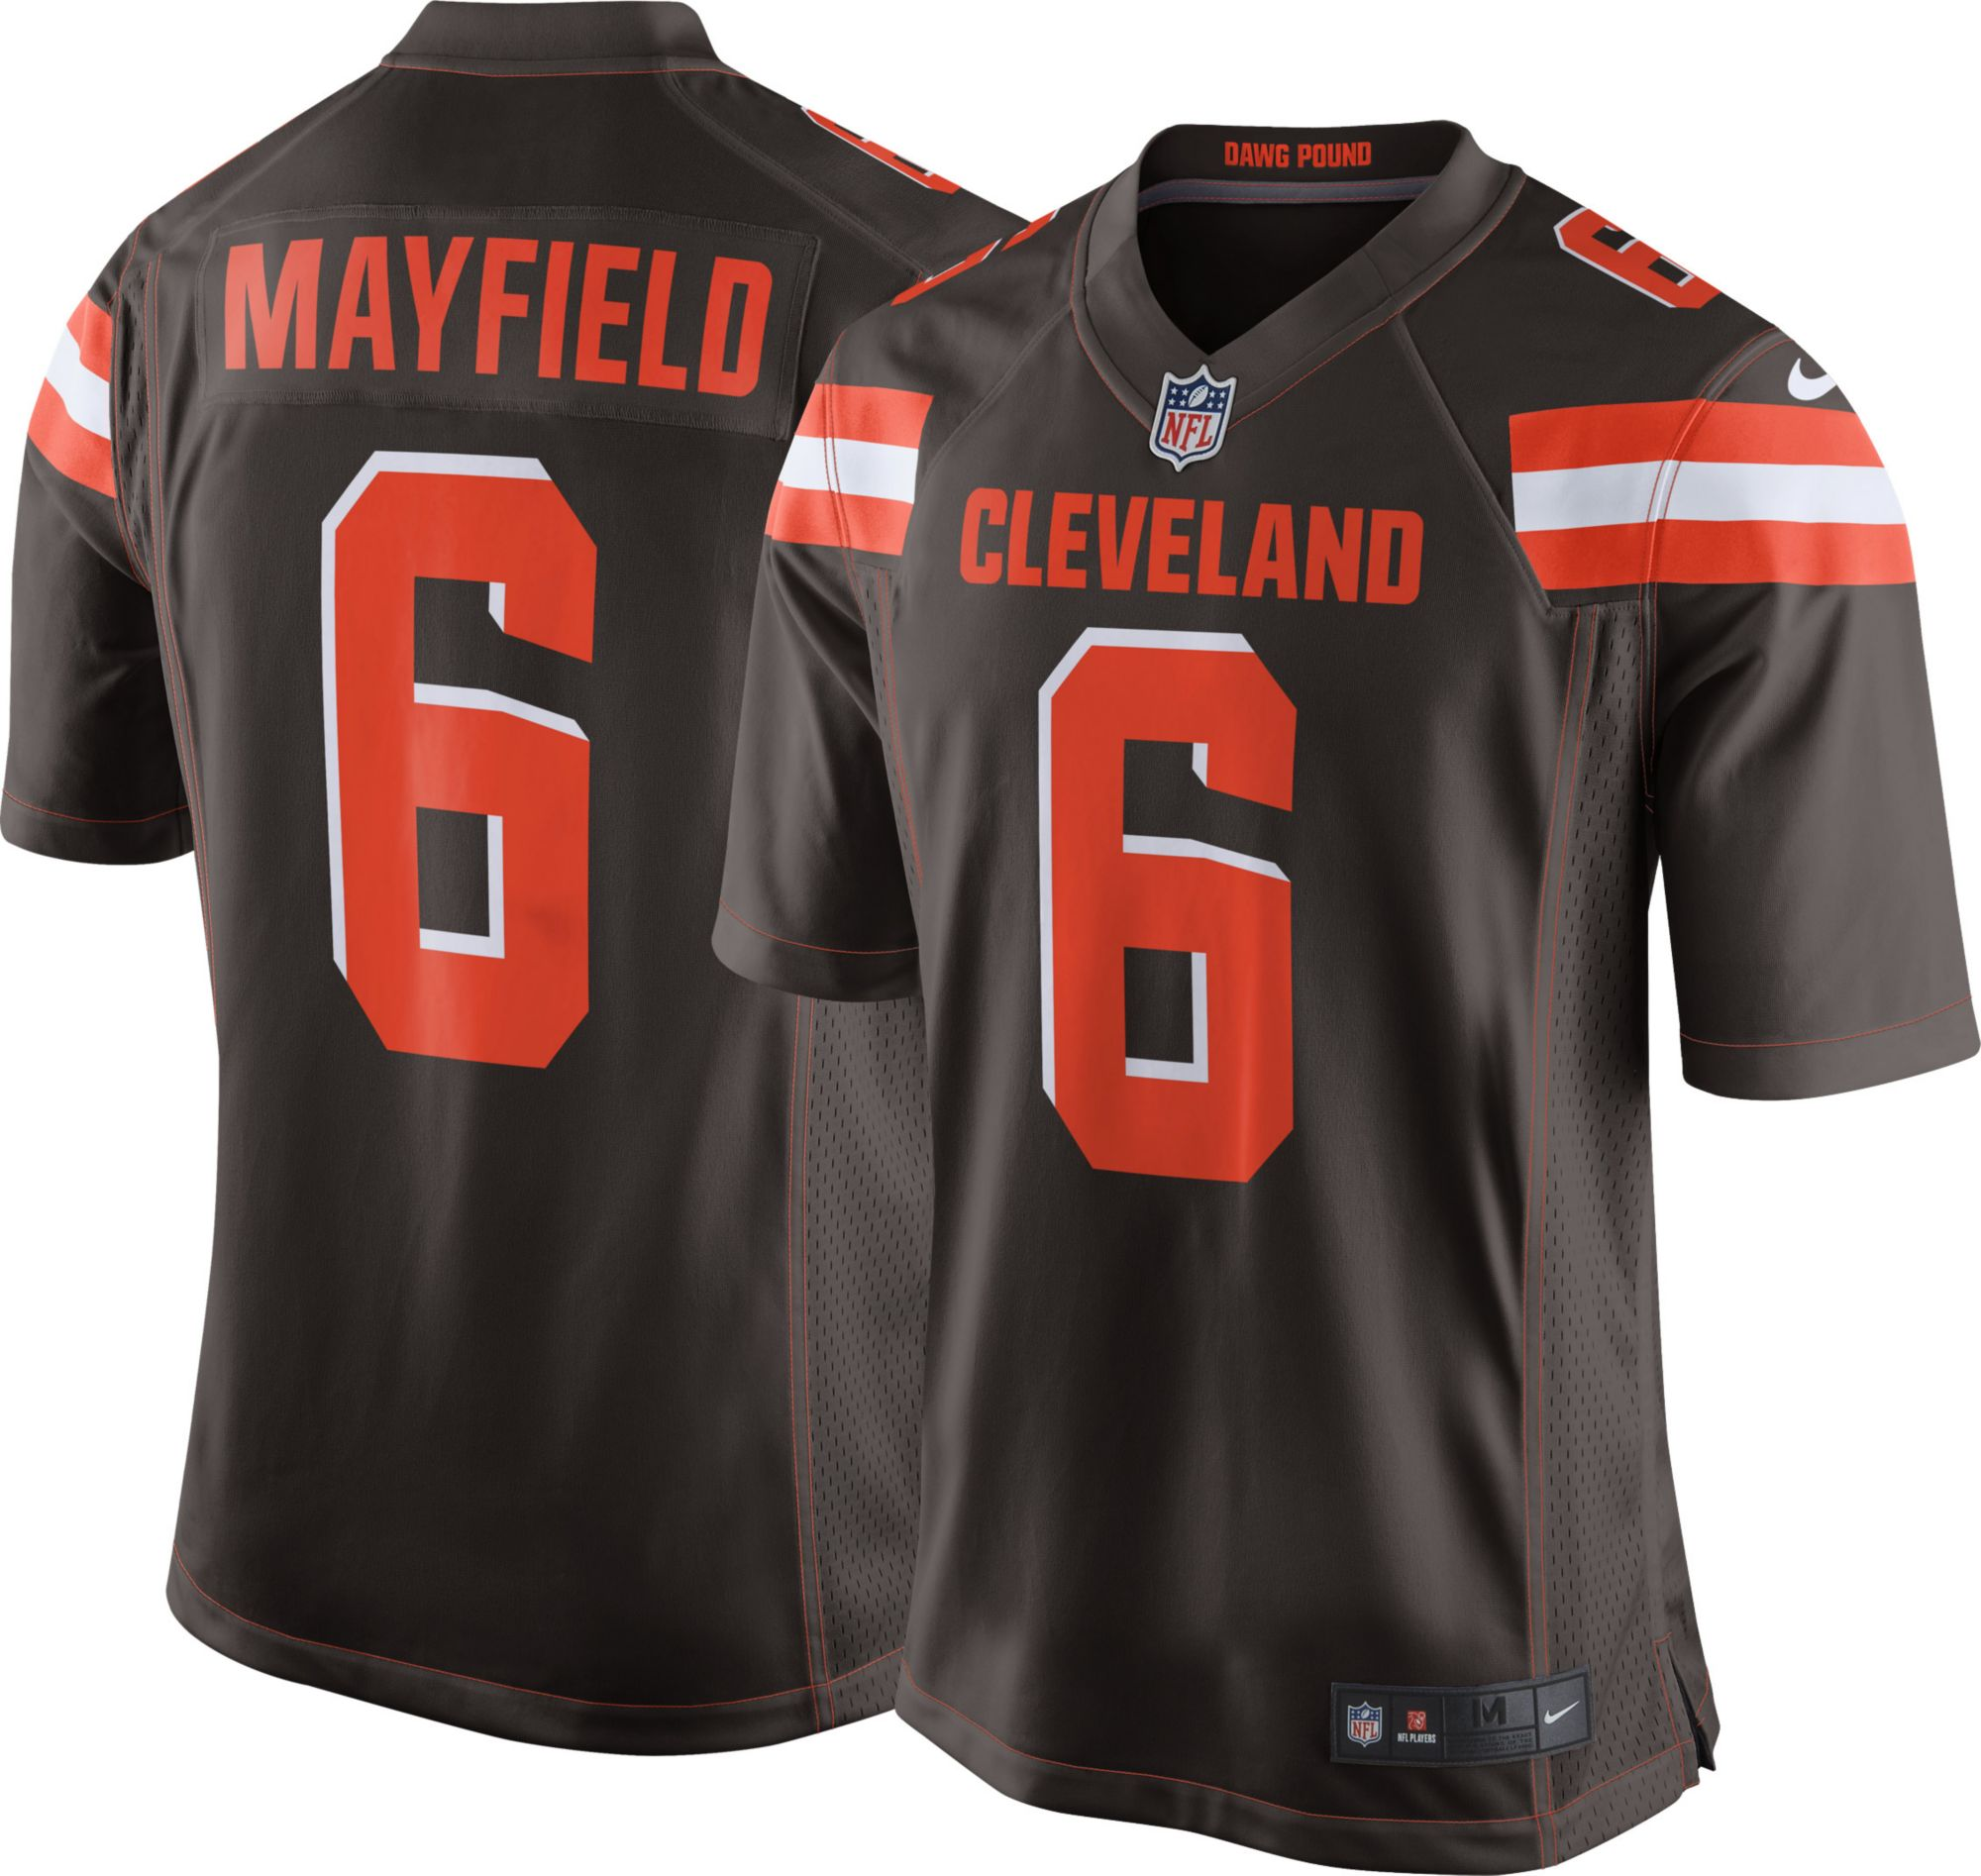 baker mayfield jersey cheap